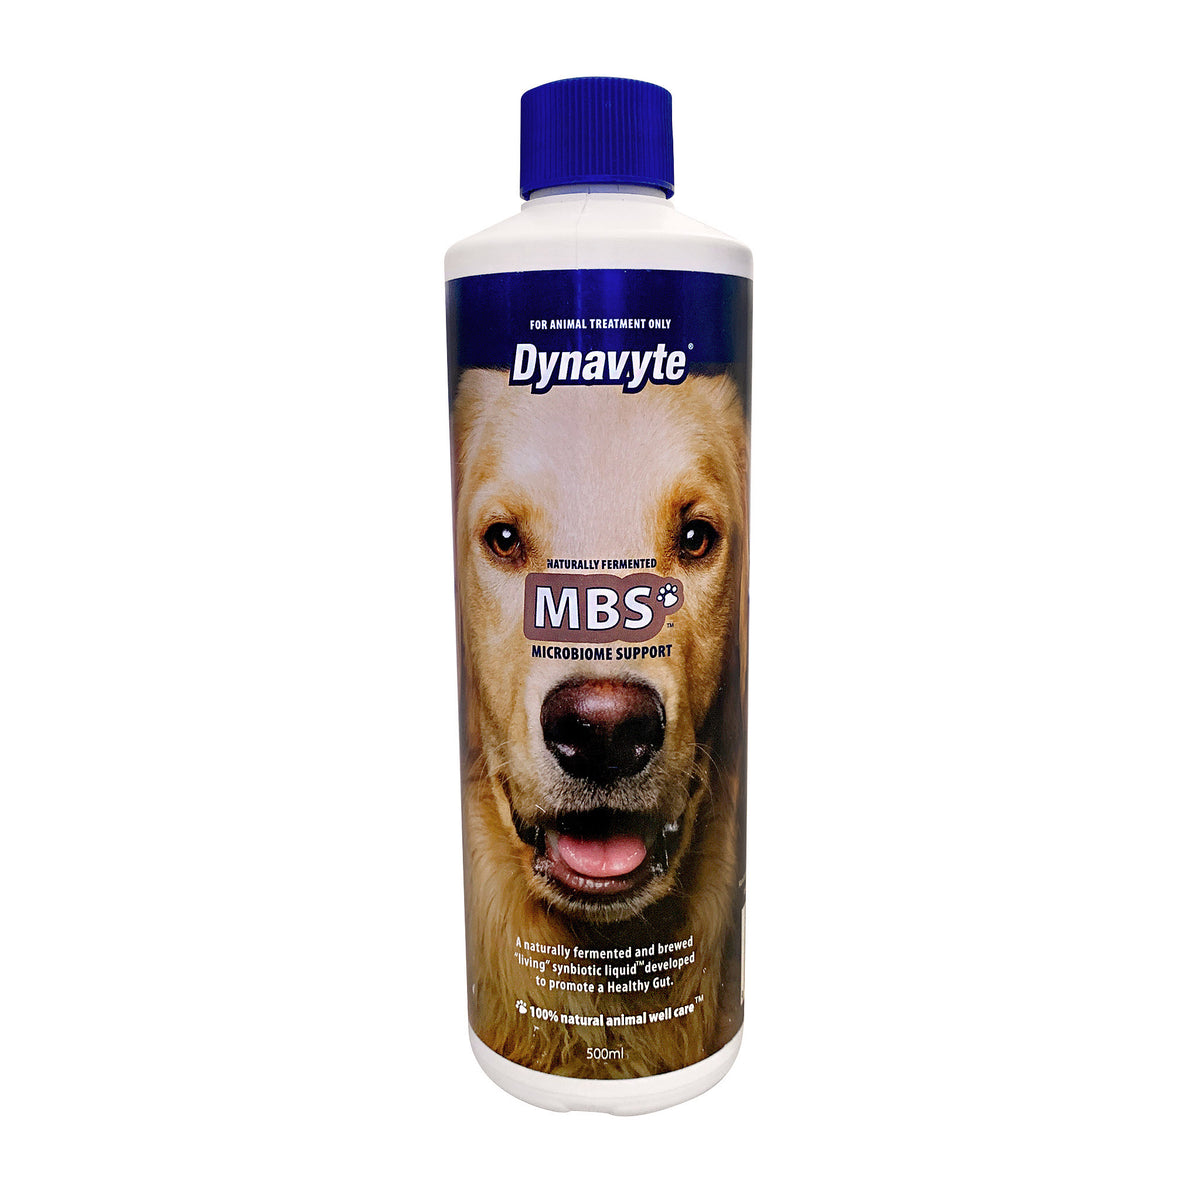 Dynavyte +Pro Active for Dogs 500mL